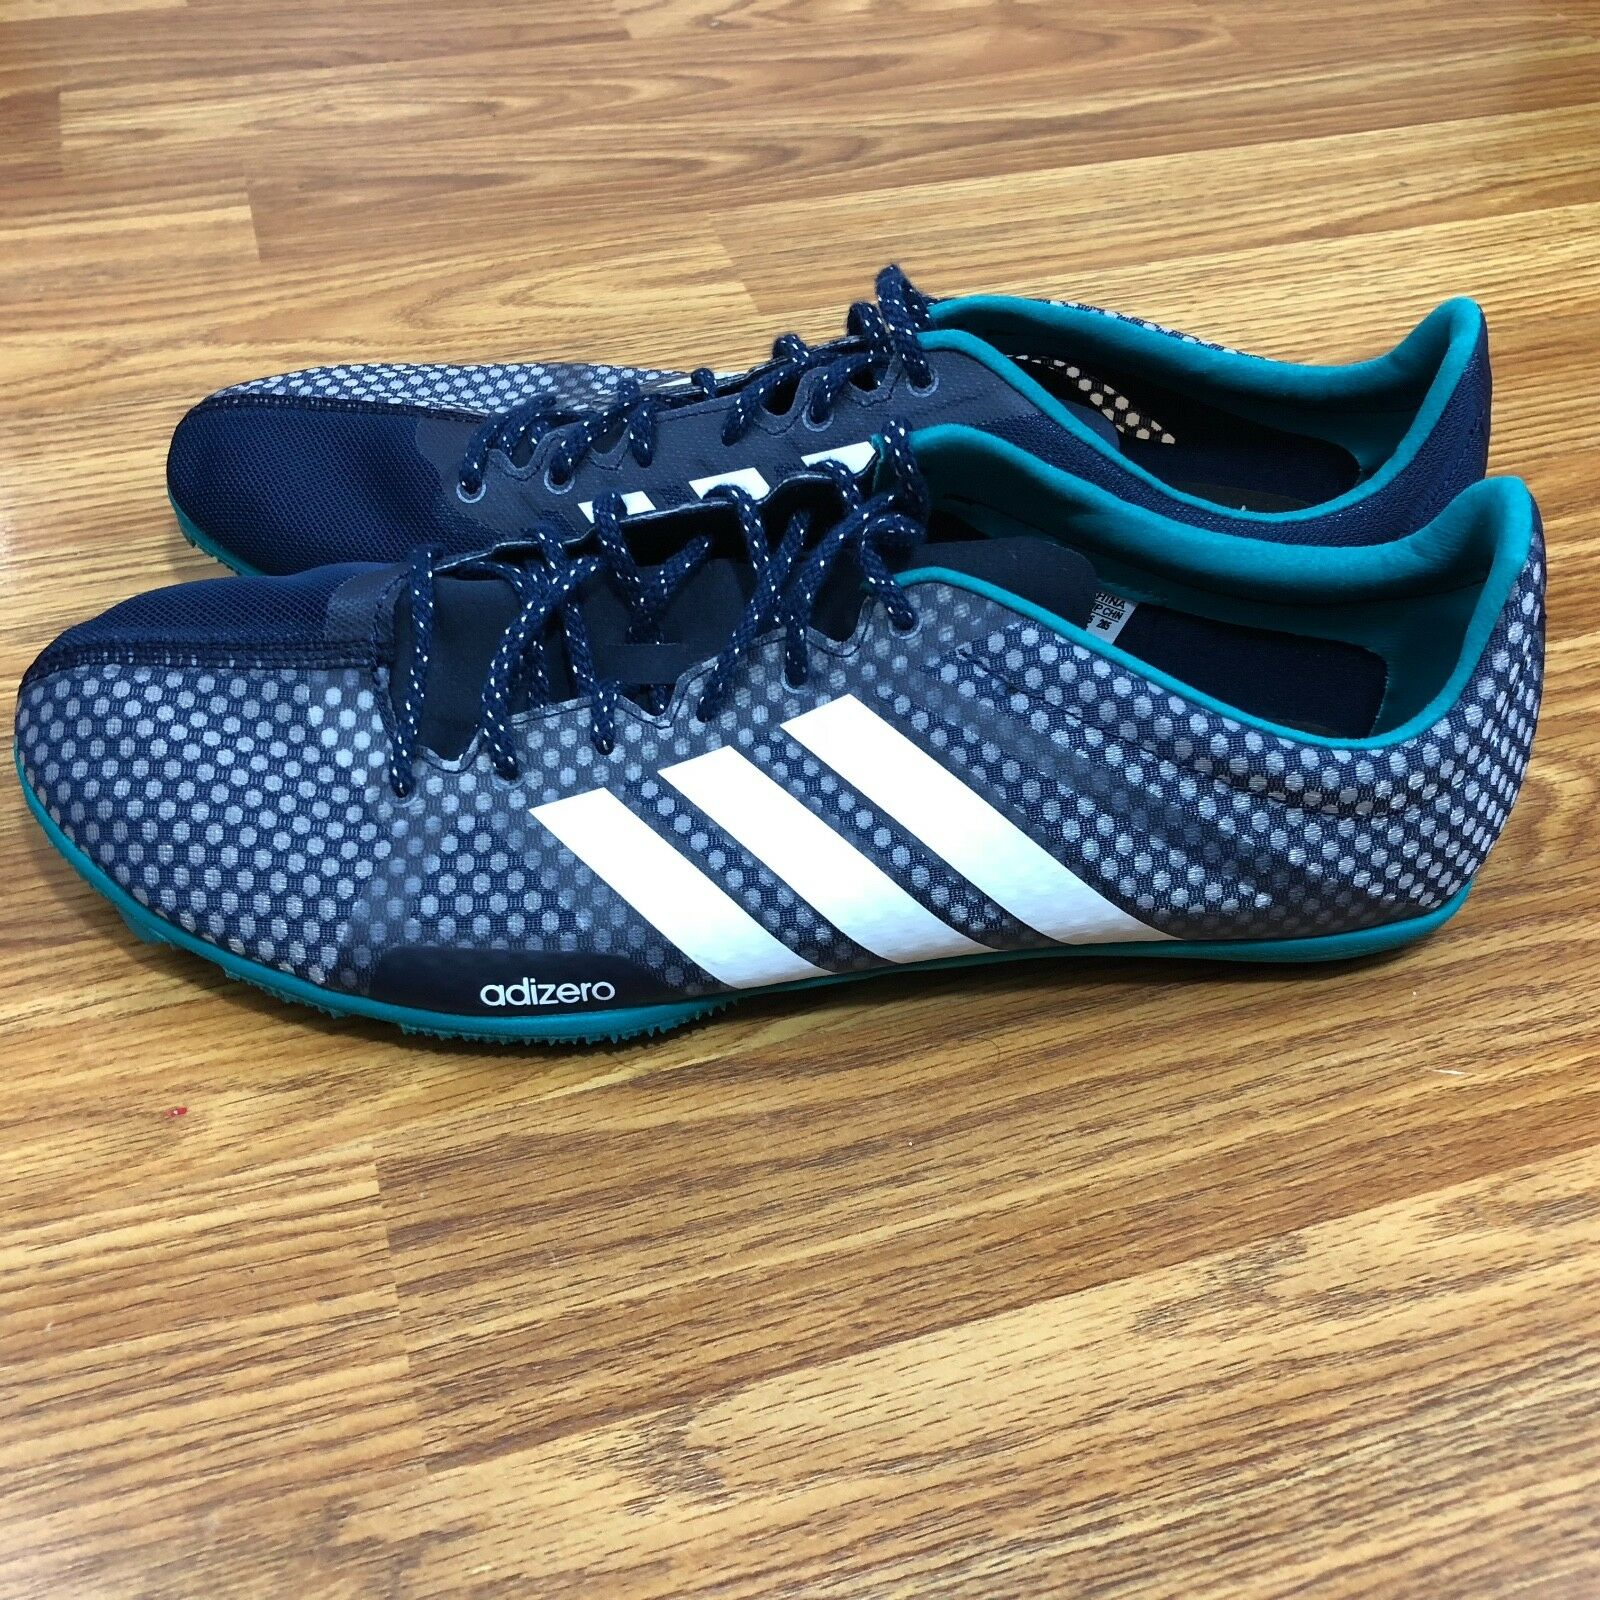 Adidas Adizero Ambition 3 Mens Running shoes AQ5592 Navy Without Spikes 11.5